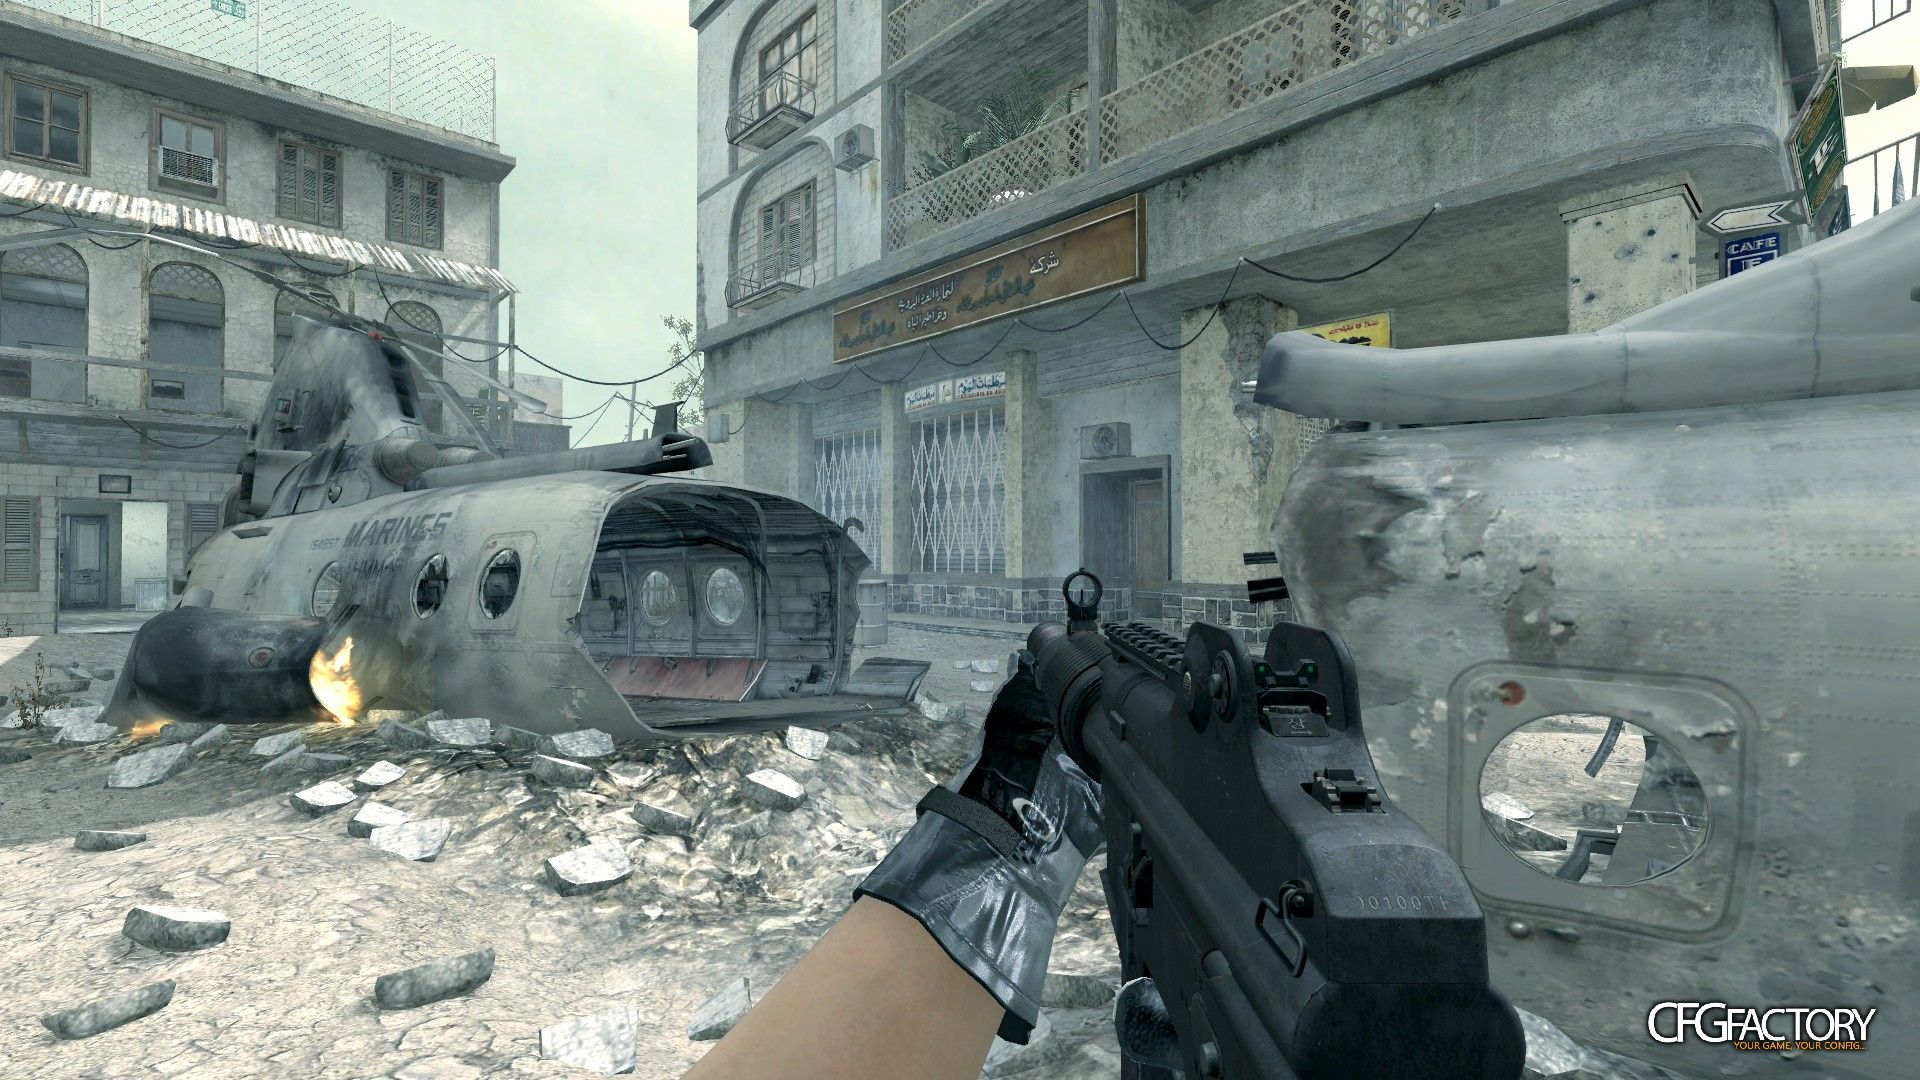 cod4, custom models, ghosts k7, convictiondr